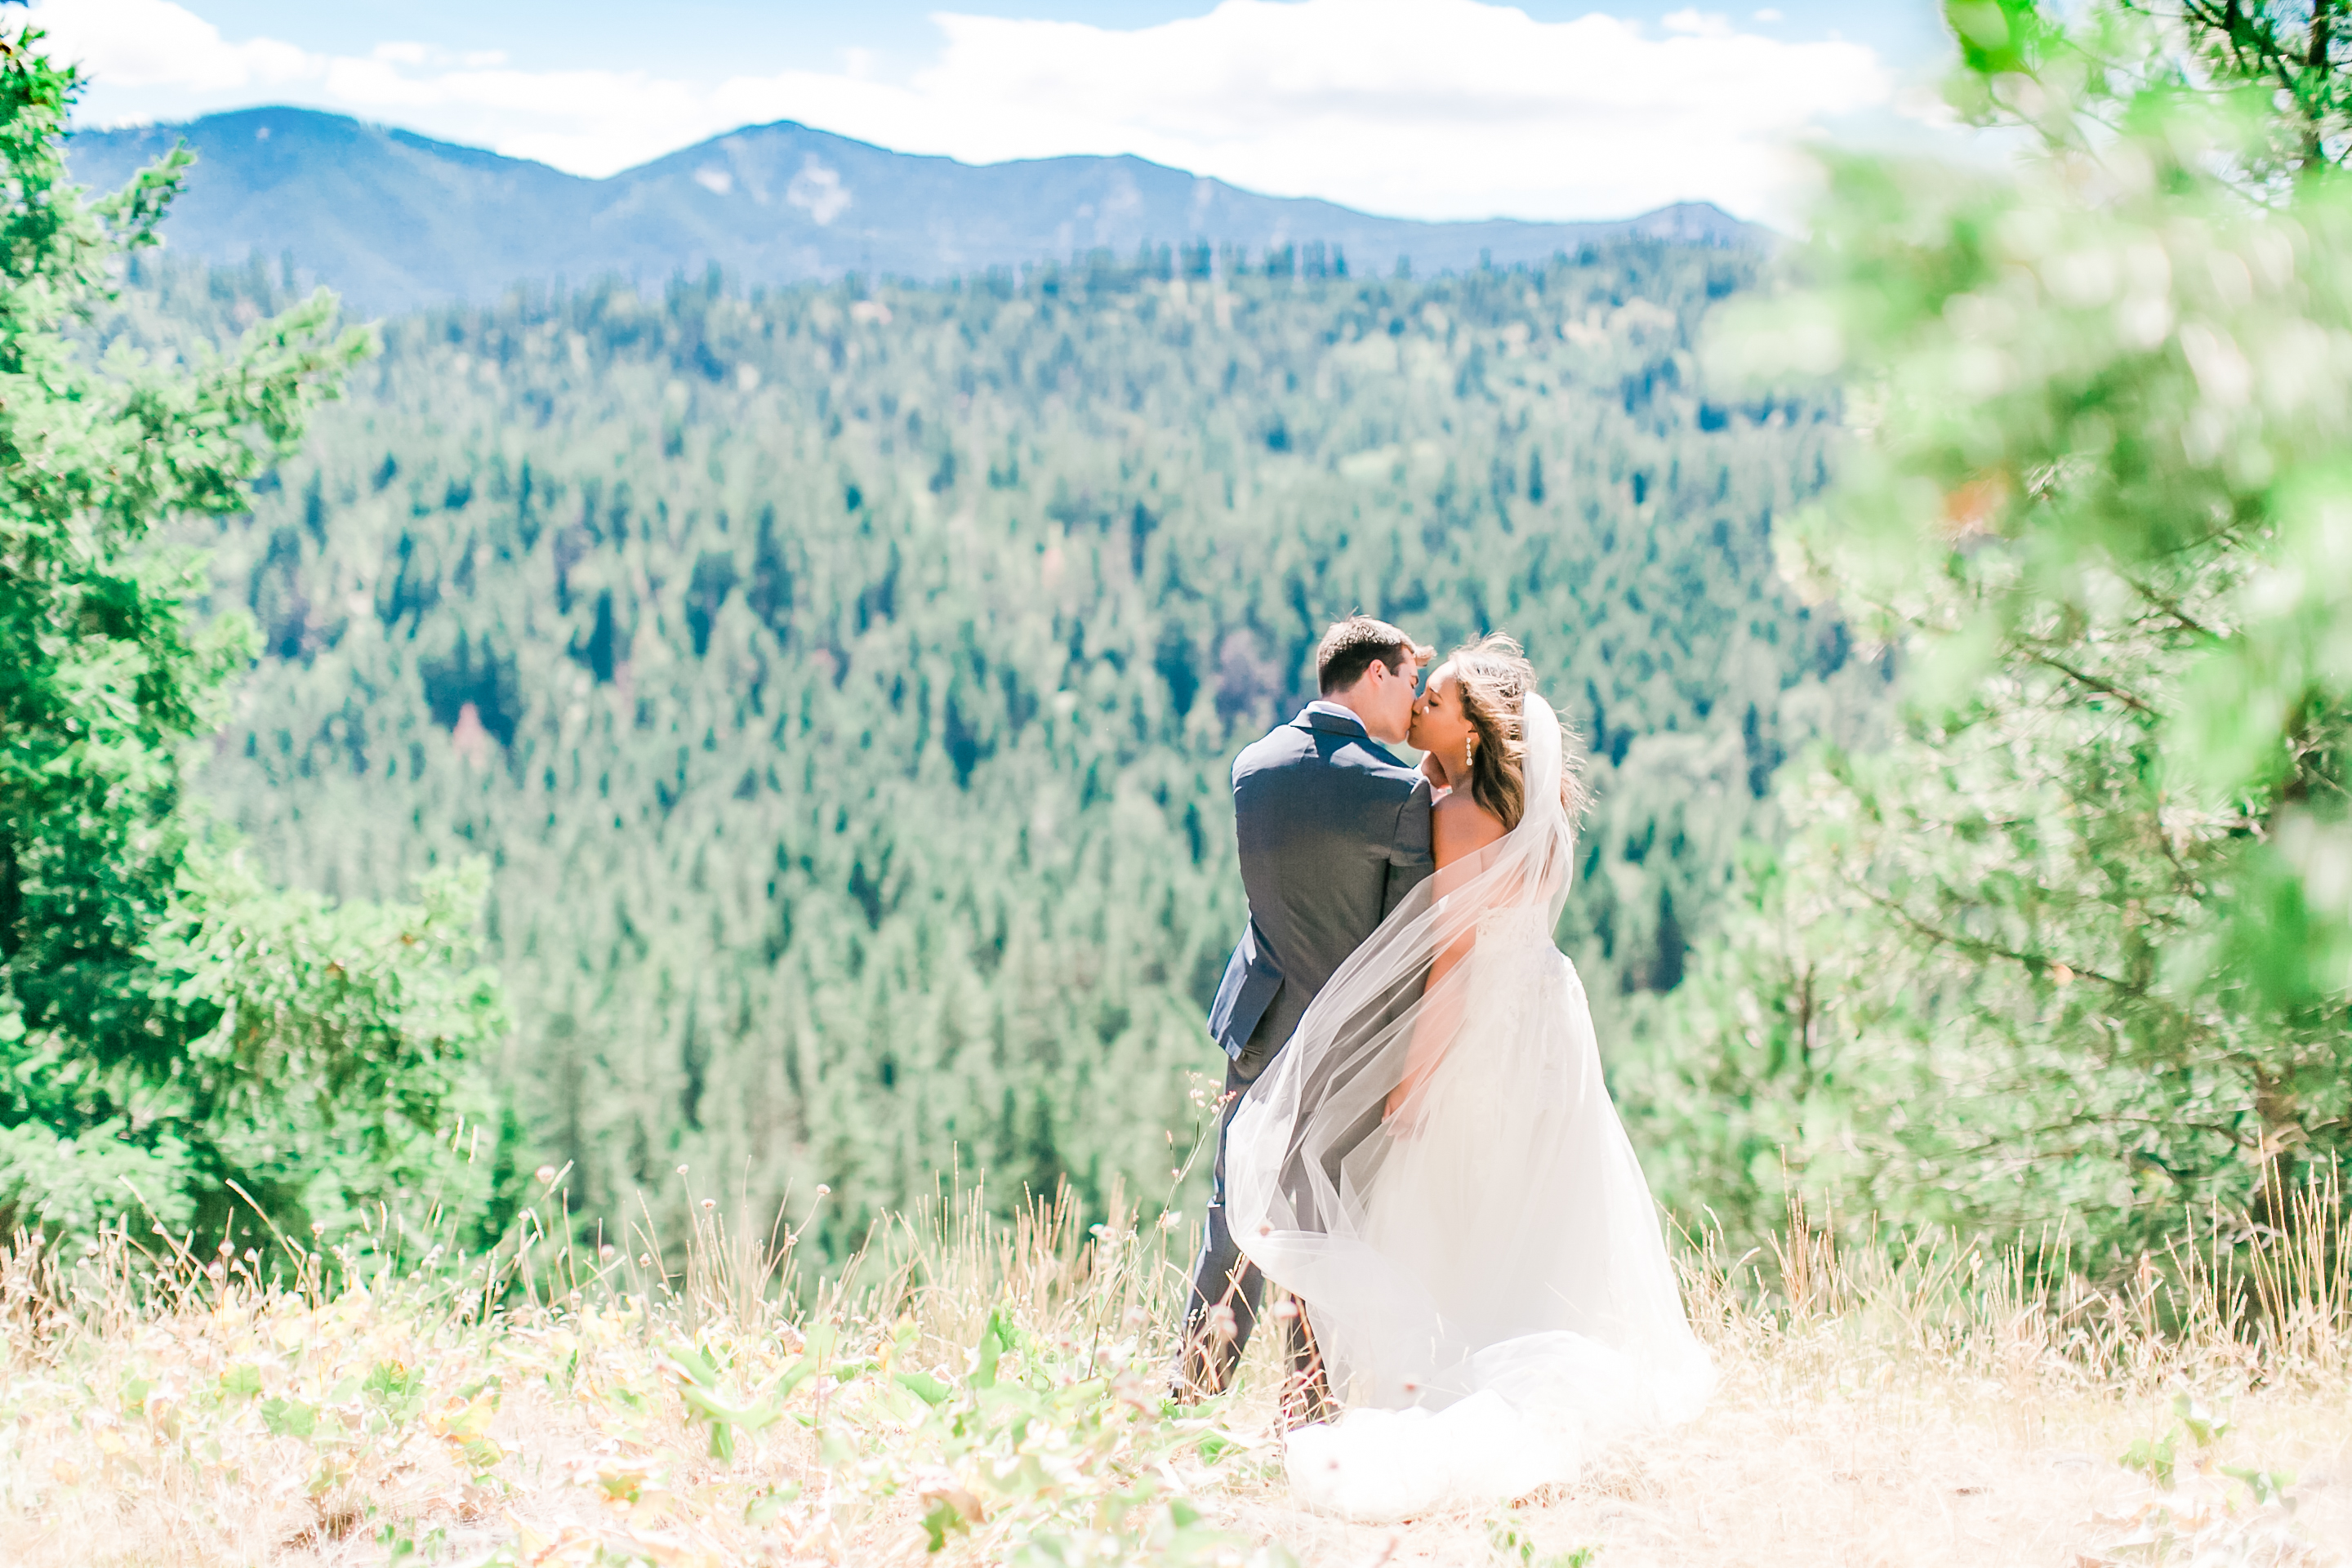 Kenya &amp;amp; Collin Vassallo were married on July 22nd, 2017 at Suncadia Resort in Cle Elum, WA. First of all, the wedding was GORGEOUS but the truly remarkable moments were watching the love that Kenya and Collin share for each other. It is truly special to watch. (Image: Rachel Howerton Photography /http://rachelhowertonphotography.com/2017/07/inn-suncadia-wedding-seattle-wedding-photogapher/)<p></p>